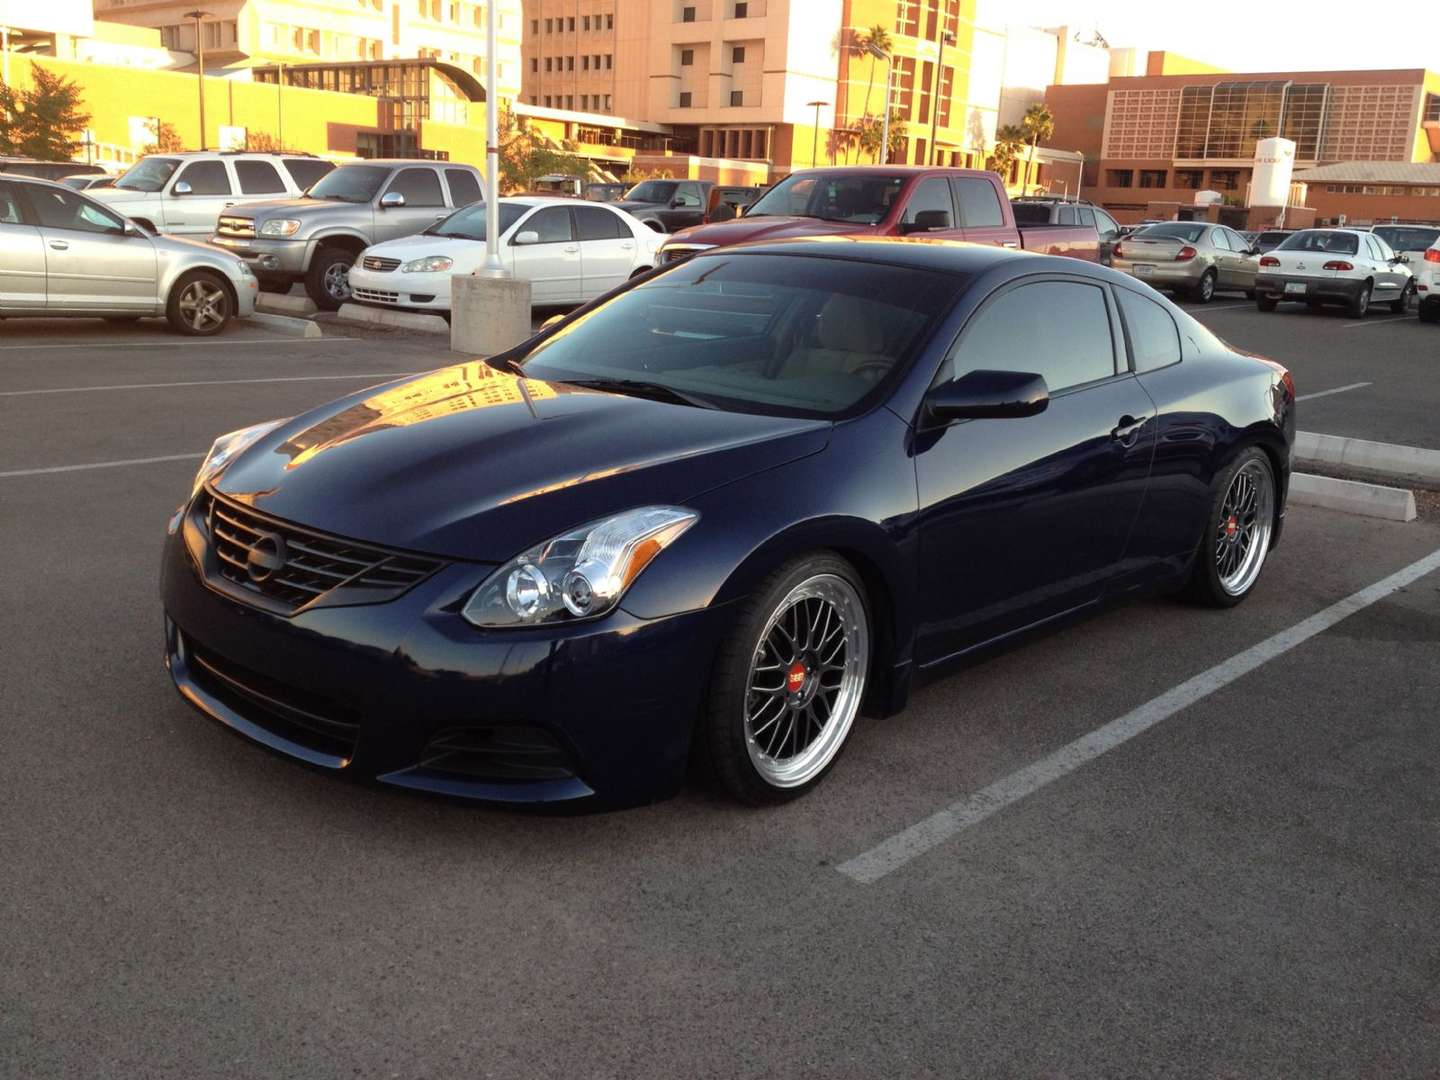 Nissan Altima Coupe #9660773